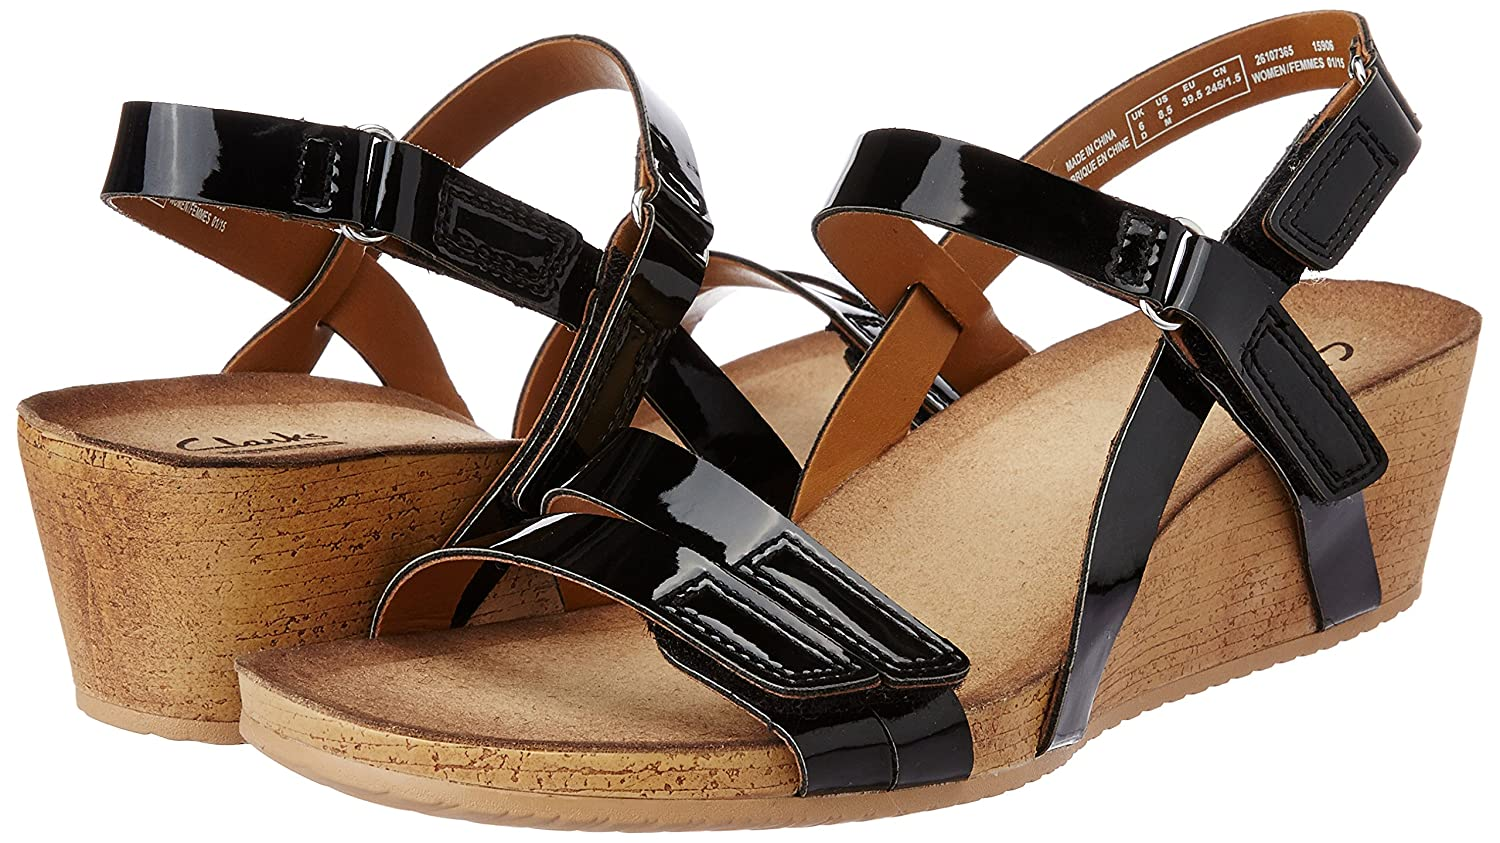 b04e4f101b Clarks Womens Alto Gull Black Patent Leather Casual Sandals: Amazon.co.uk:  Shoes & Bags